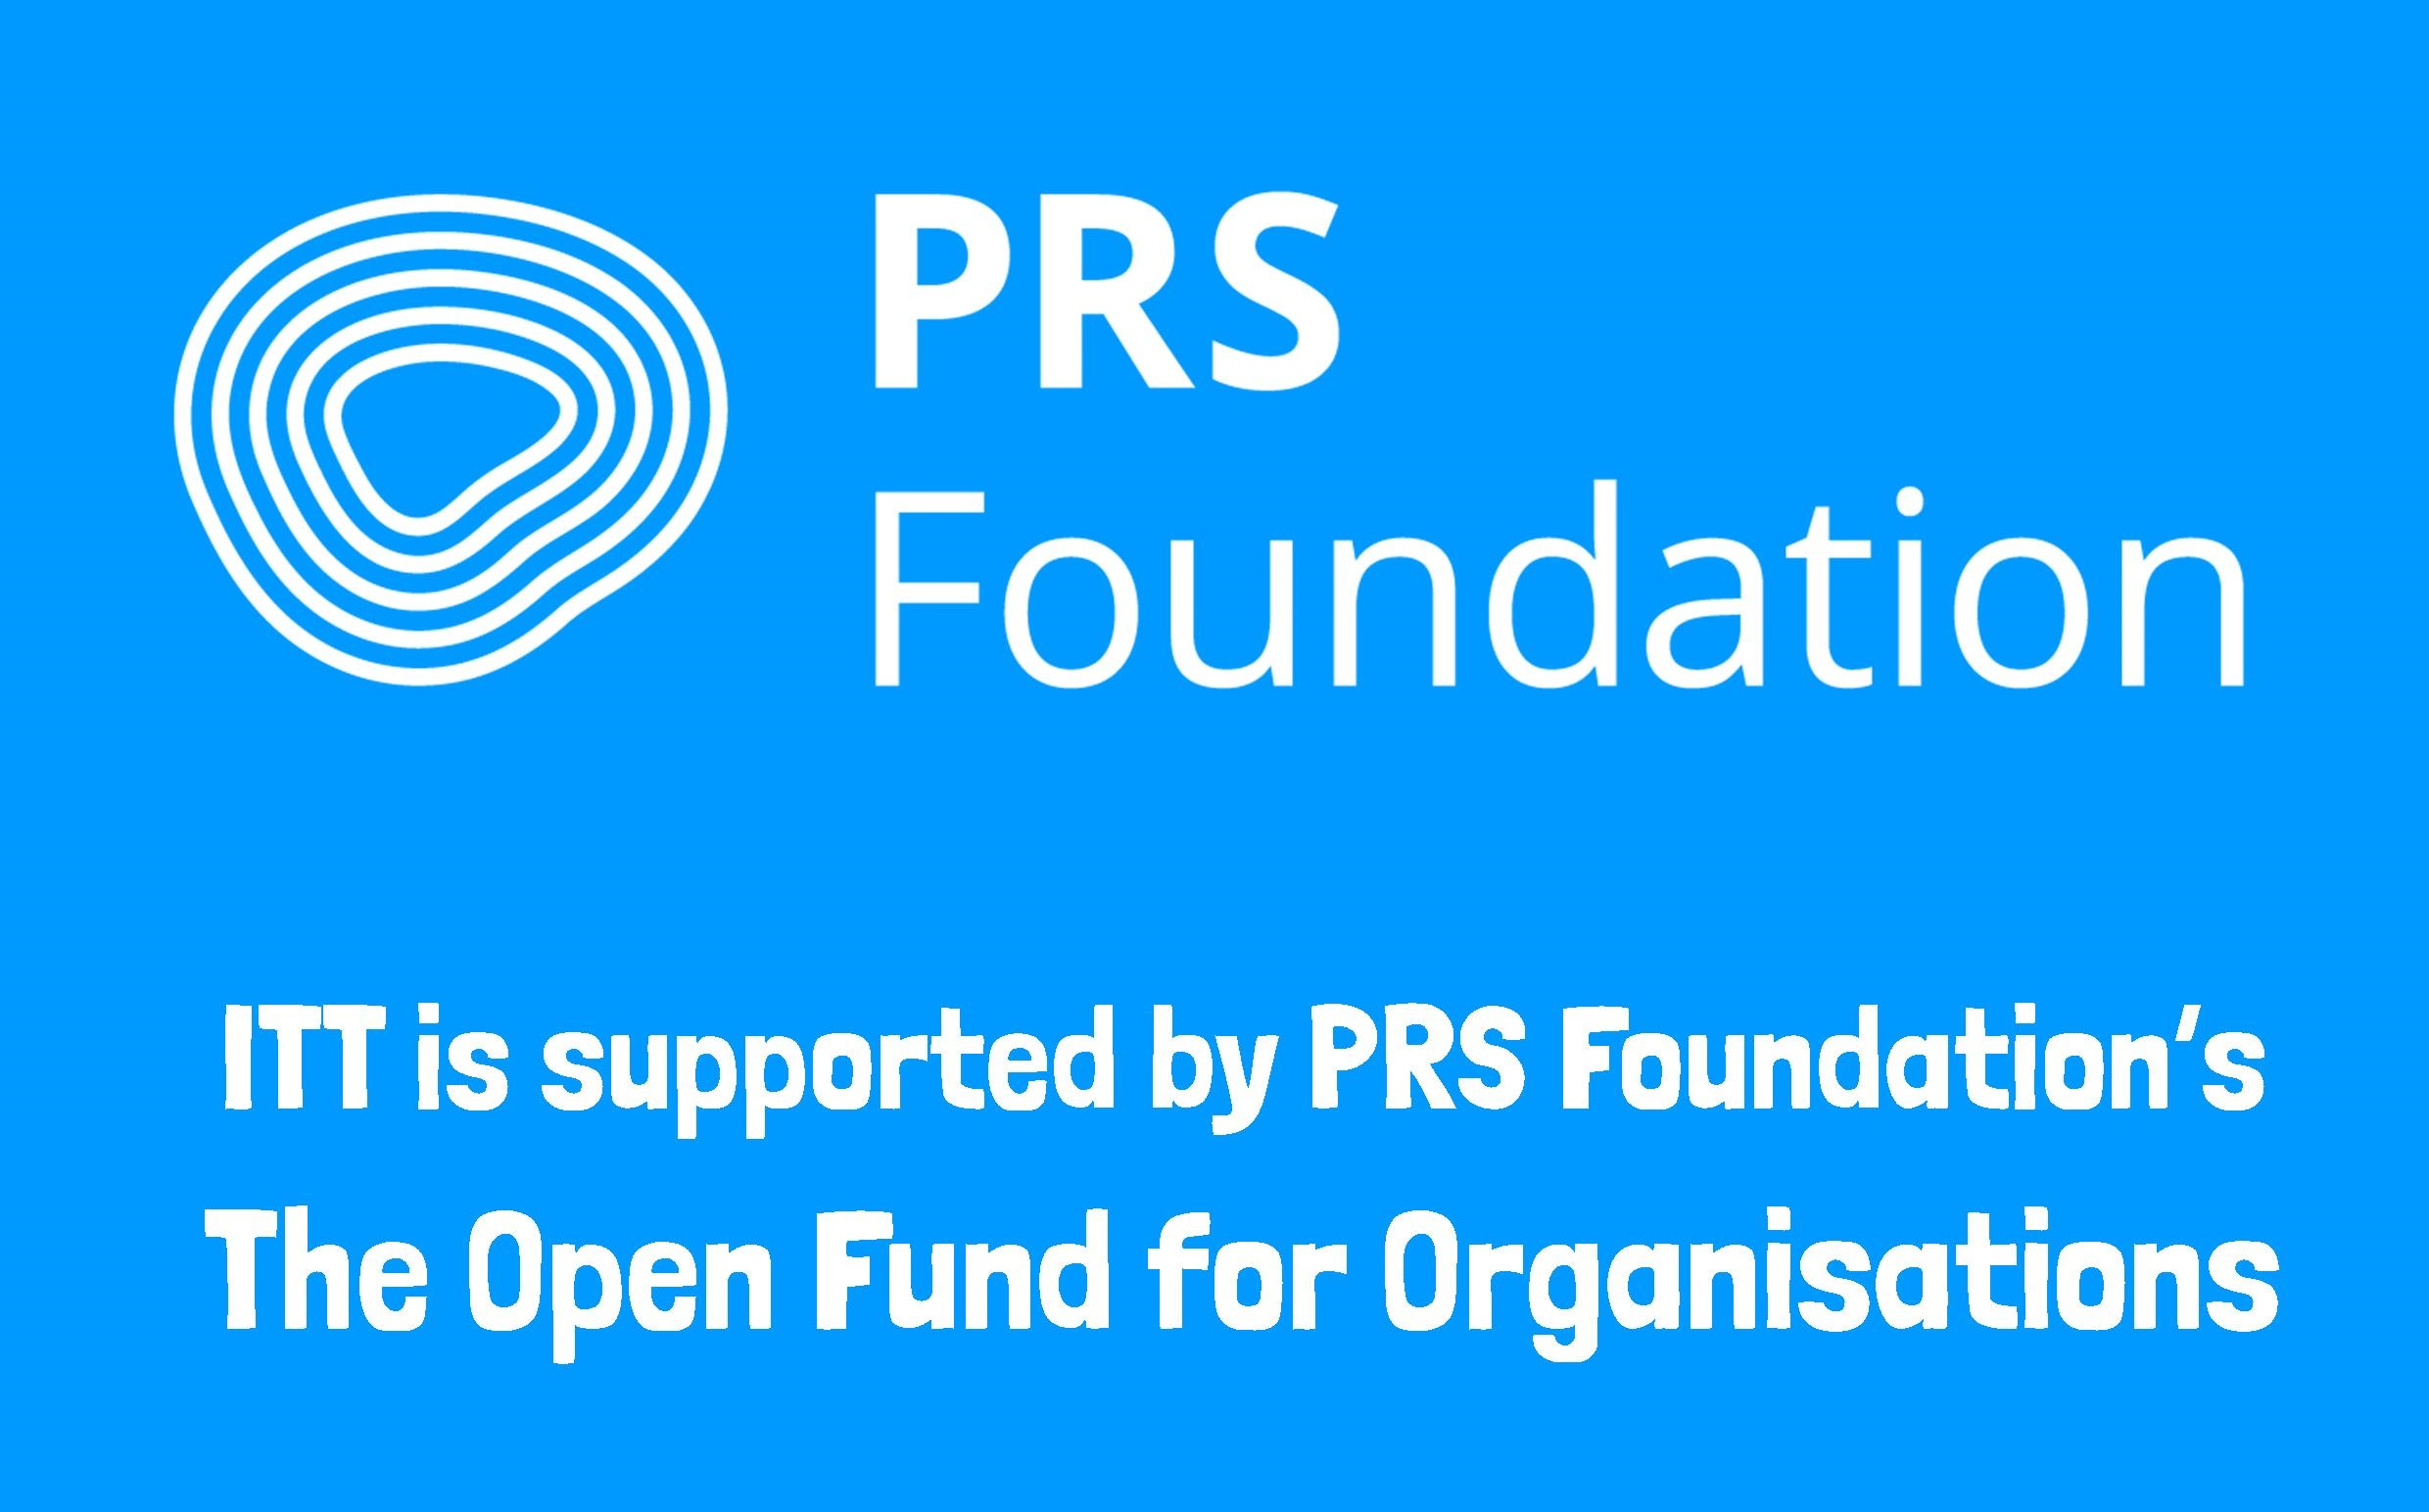 ITT is supported by PRS Foundations Open Fund